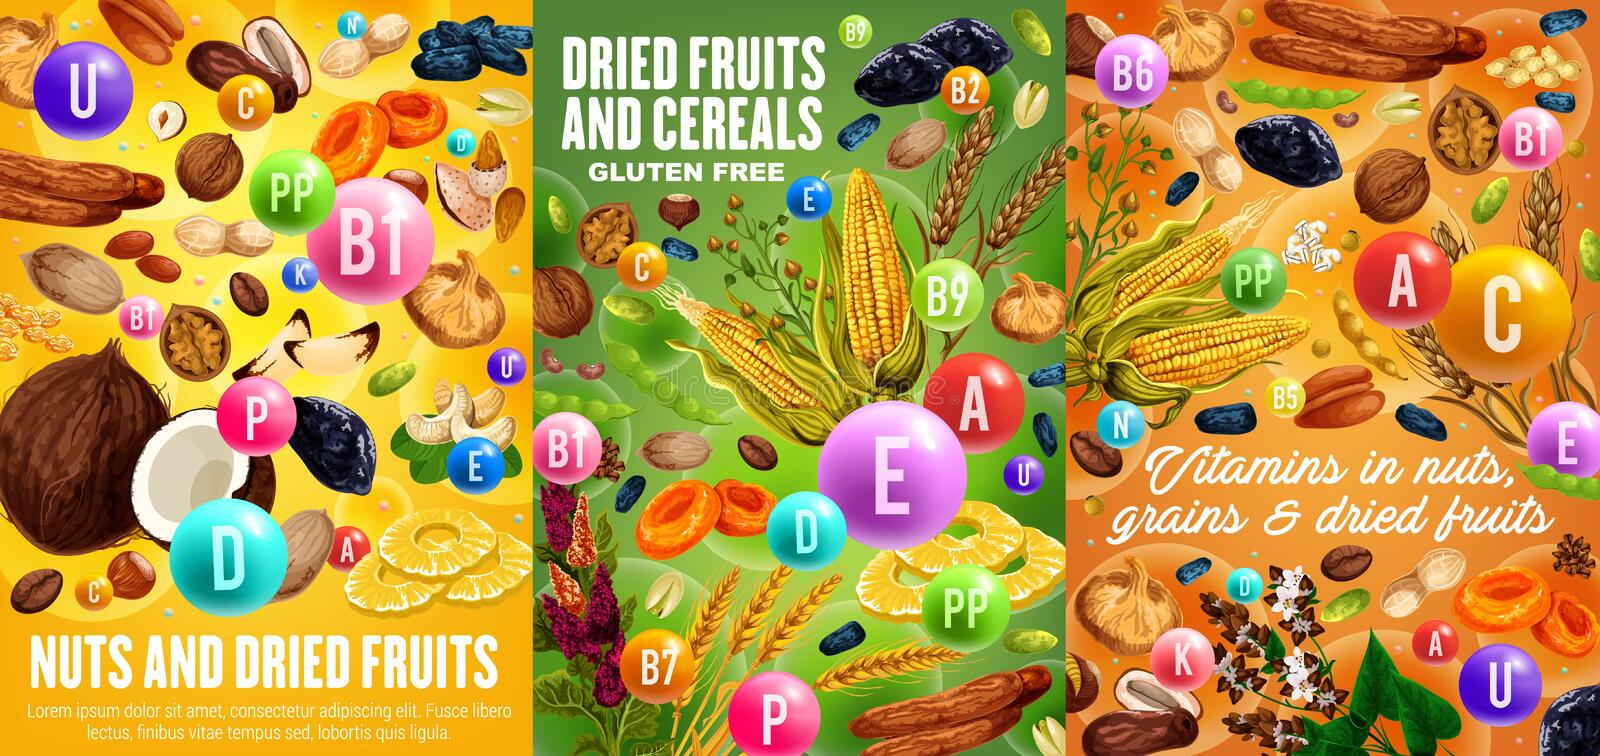 Dried fruits, nuts and cereals, vitamins. Nuts, cereals and dried fruits, vitamins and minerals in snacks. Vector gluten free grains and seeds, sweet raisins stock illustration